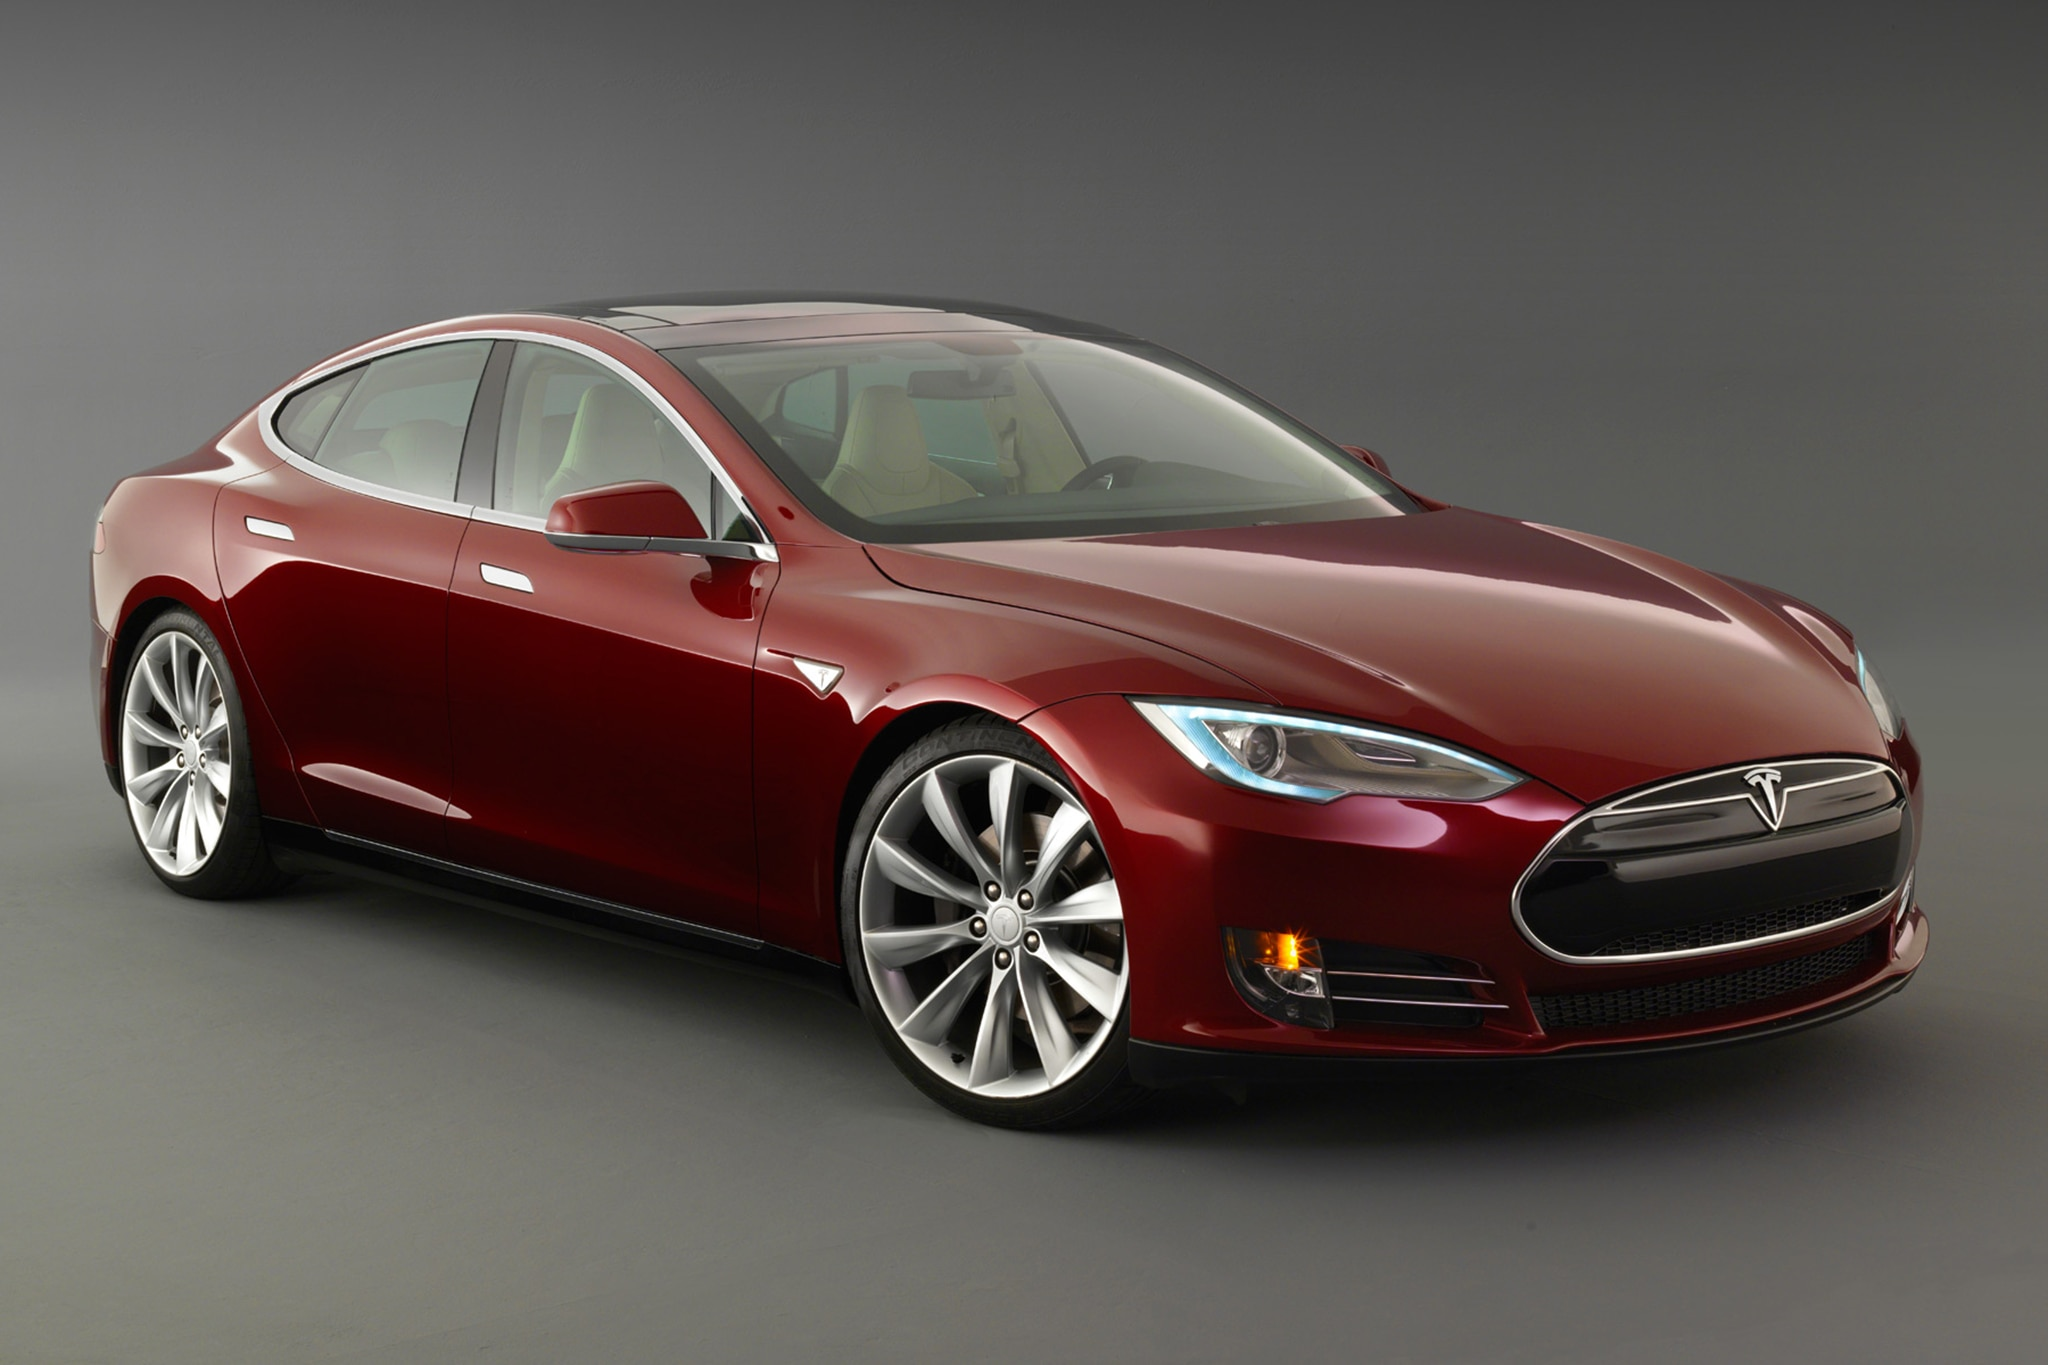 2014 Tesla Model S Three Quarters View2